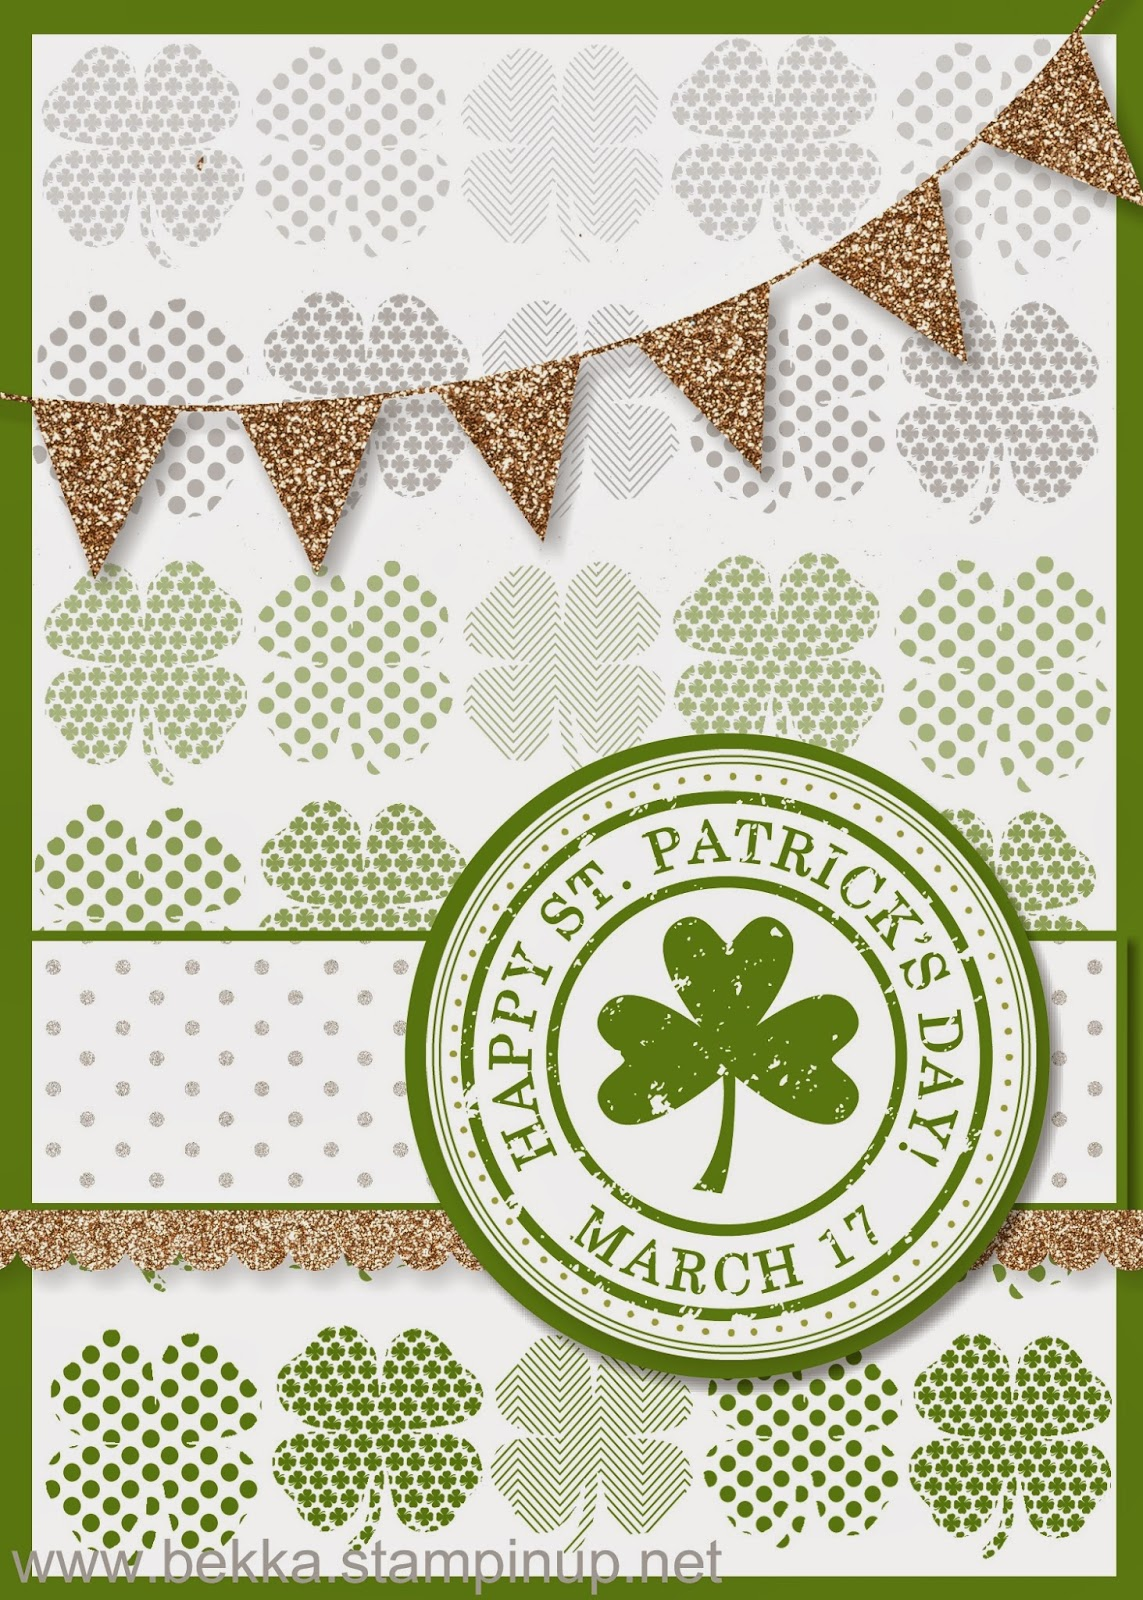 Digital St Patrick's Day Card by UK based Stampin' Up! Demonstrator Bekka Prideaux - check her blog every Monday for great digital crafting ideas